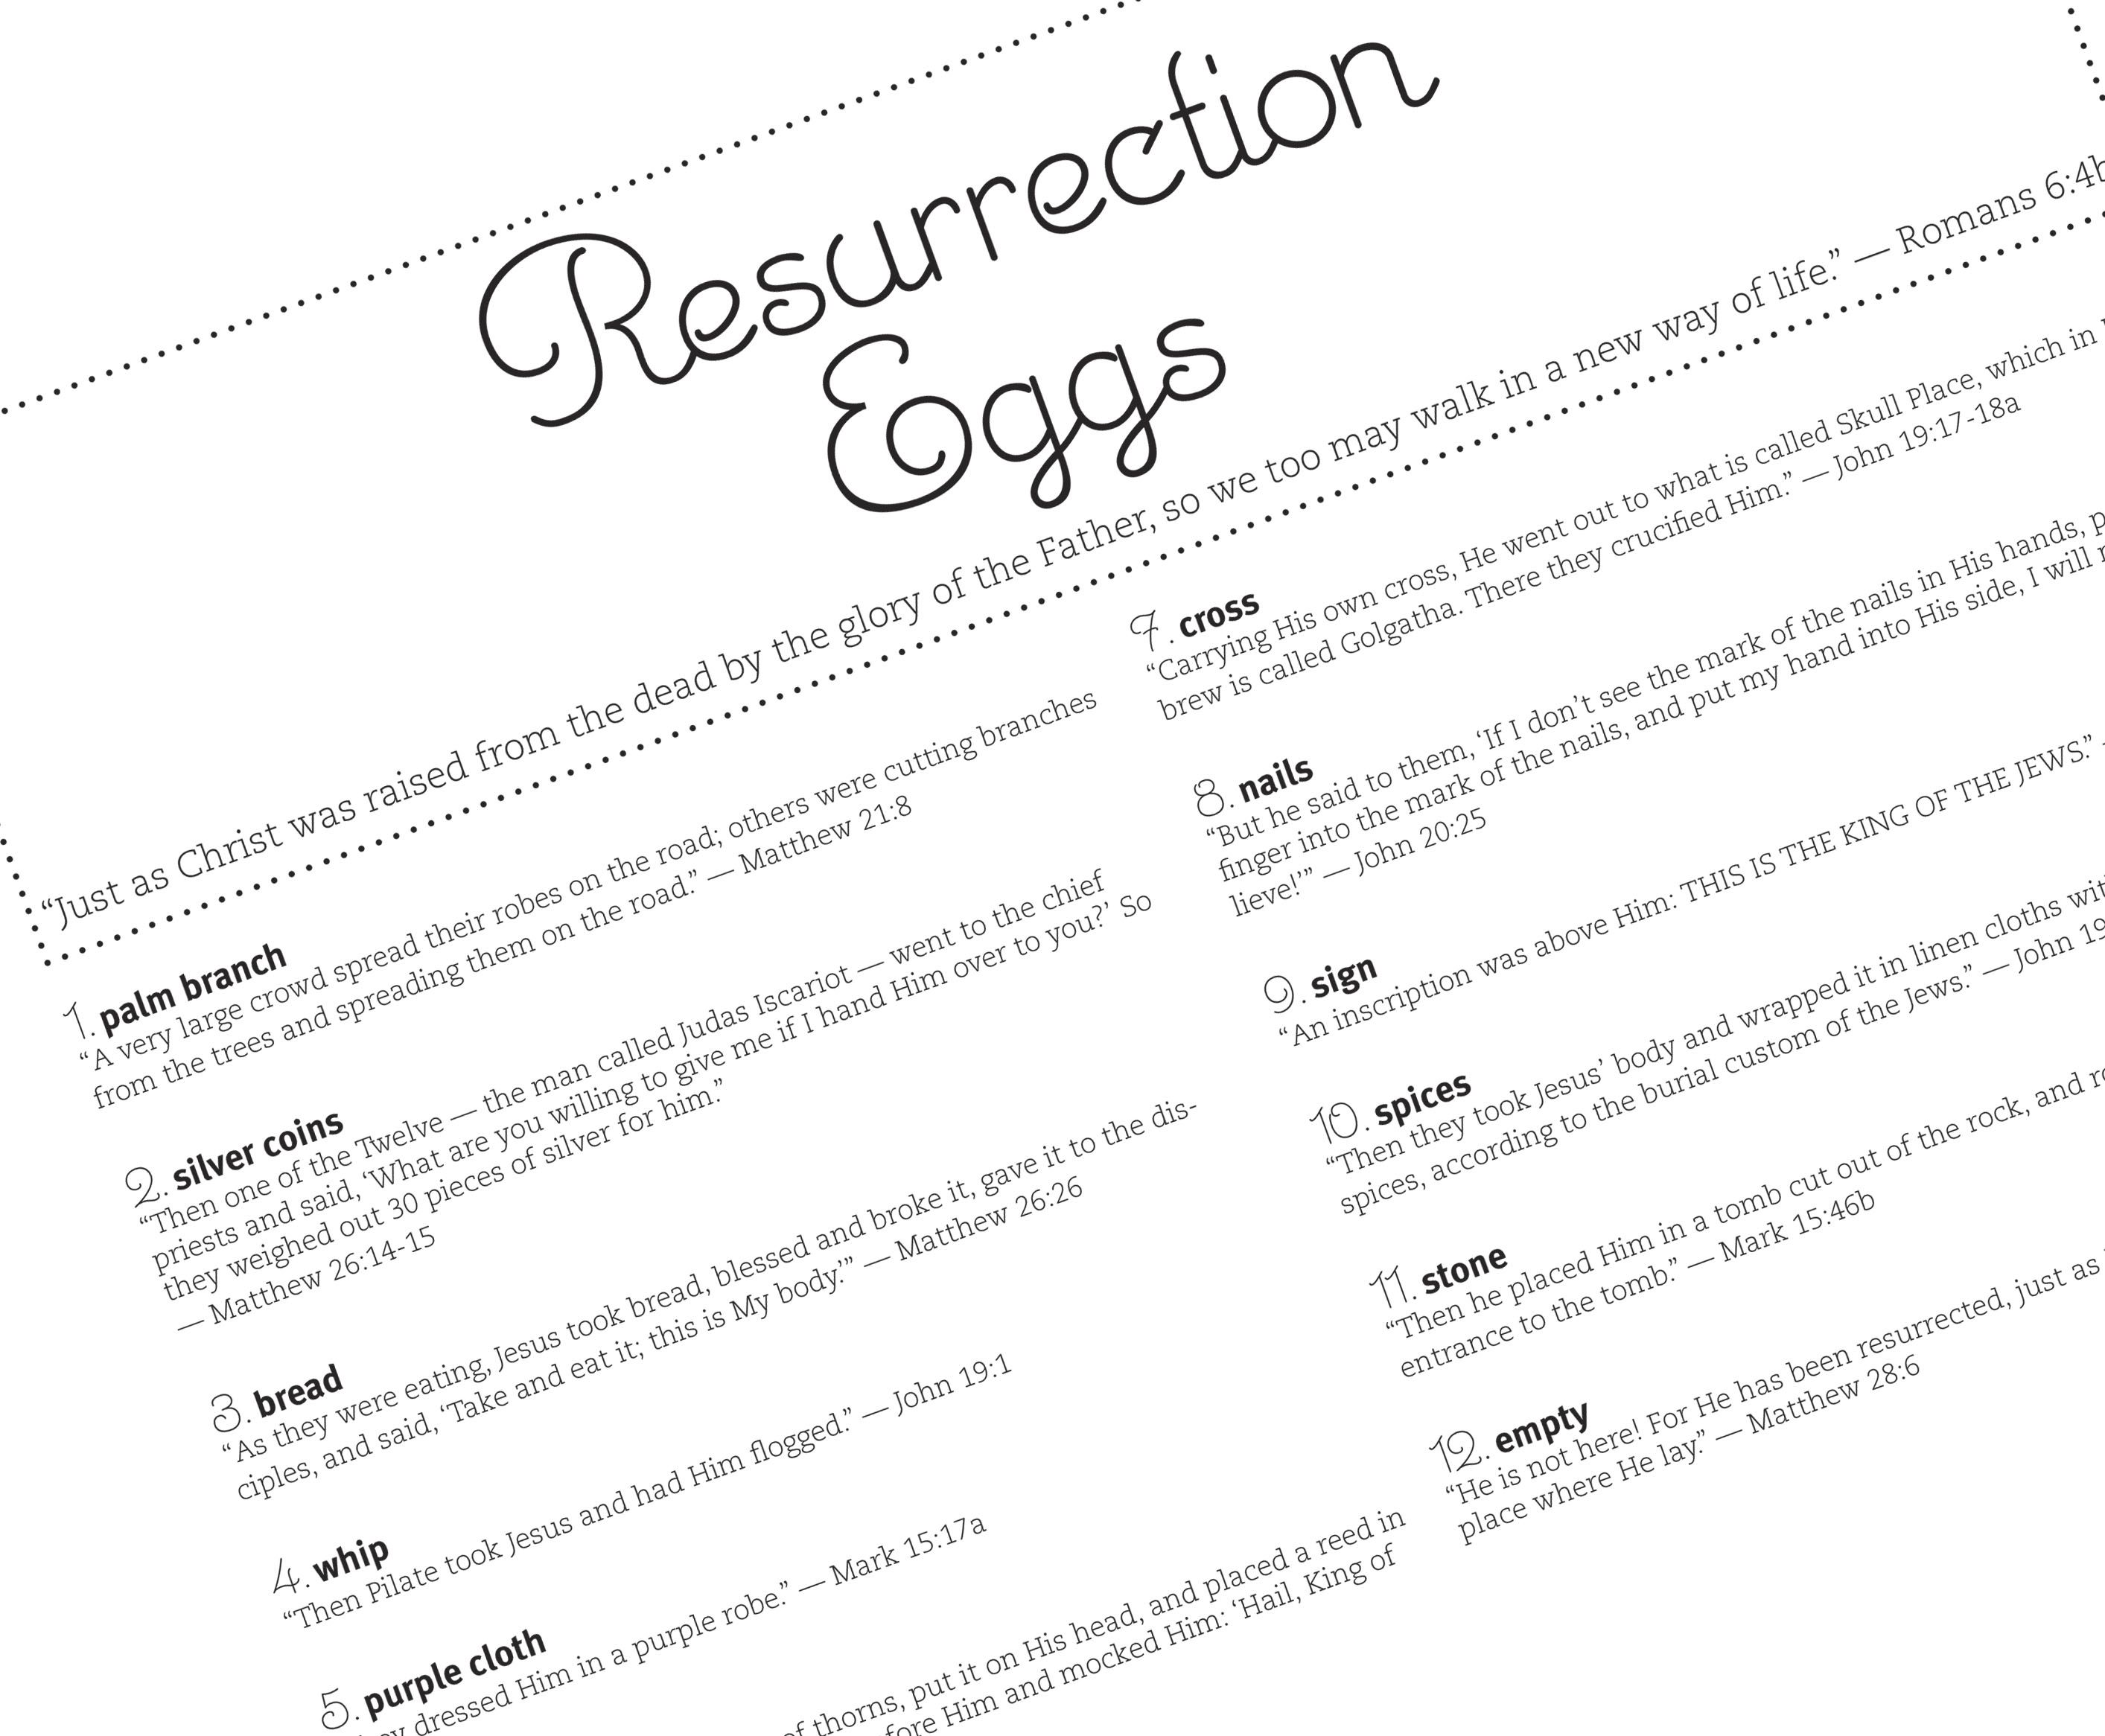 Free Resurrection Eggs Printable From Lifeway